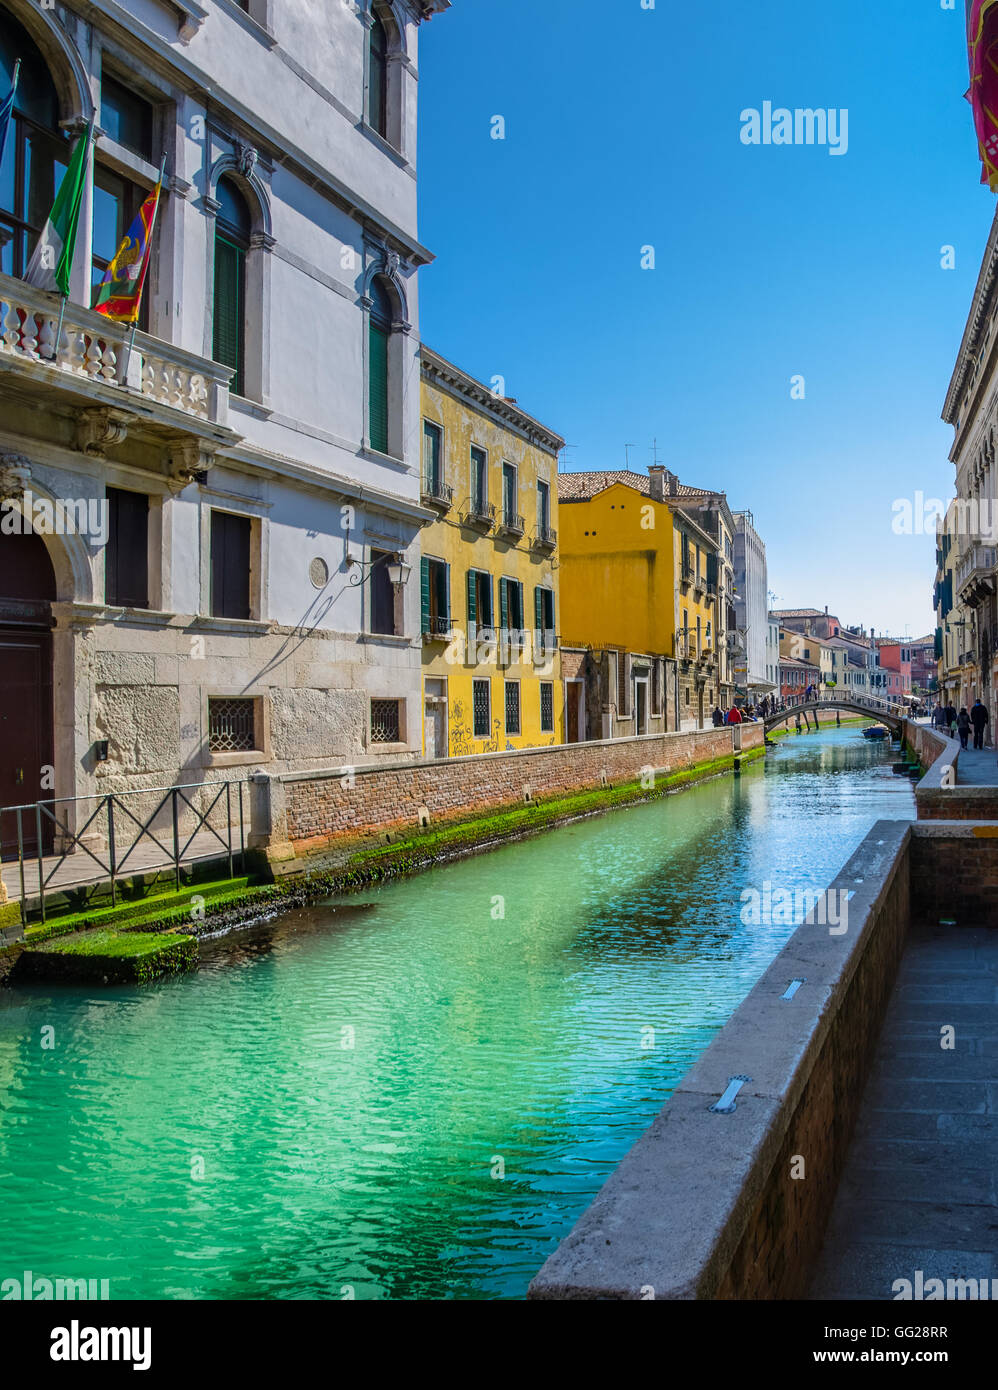 Green water colour of sea channels in Venice, Italy - Stock Image